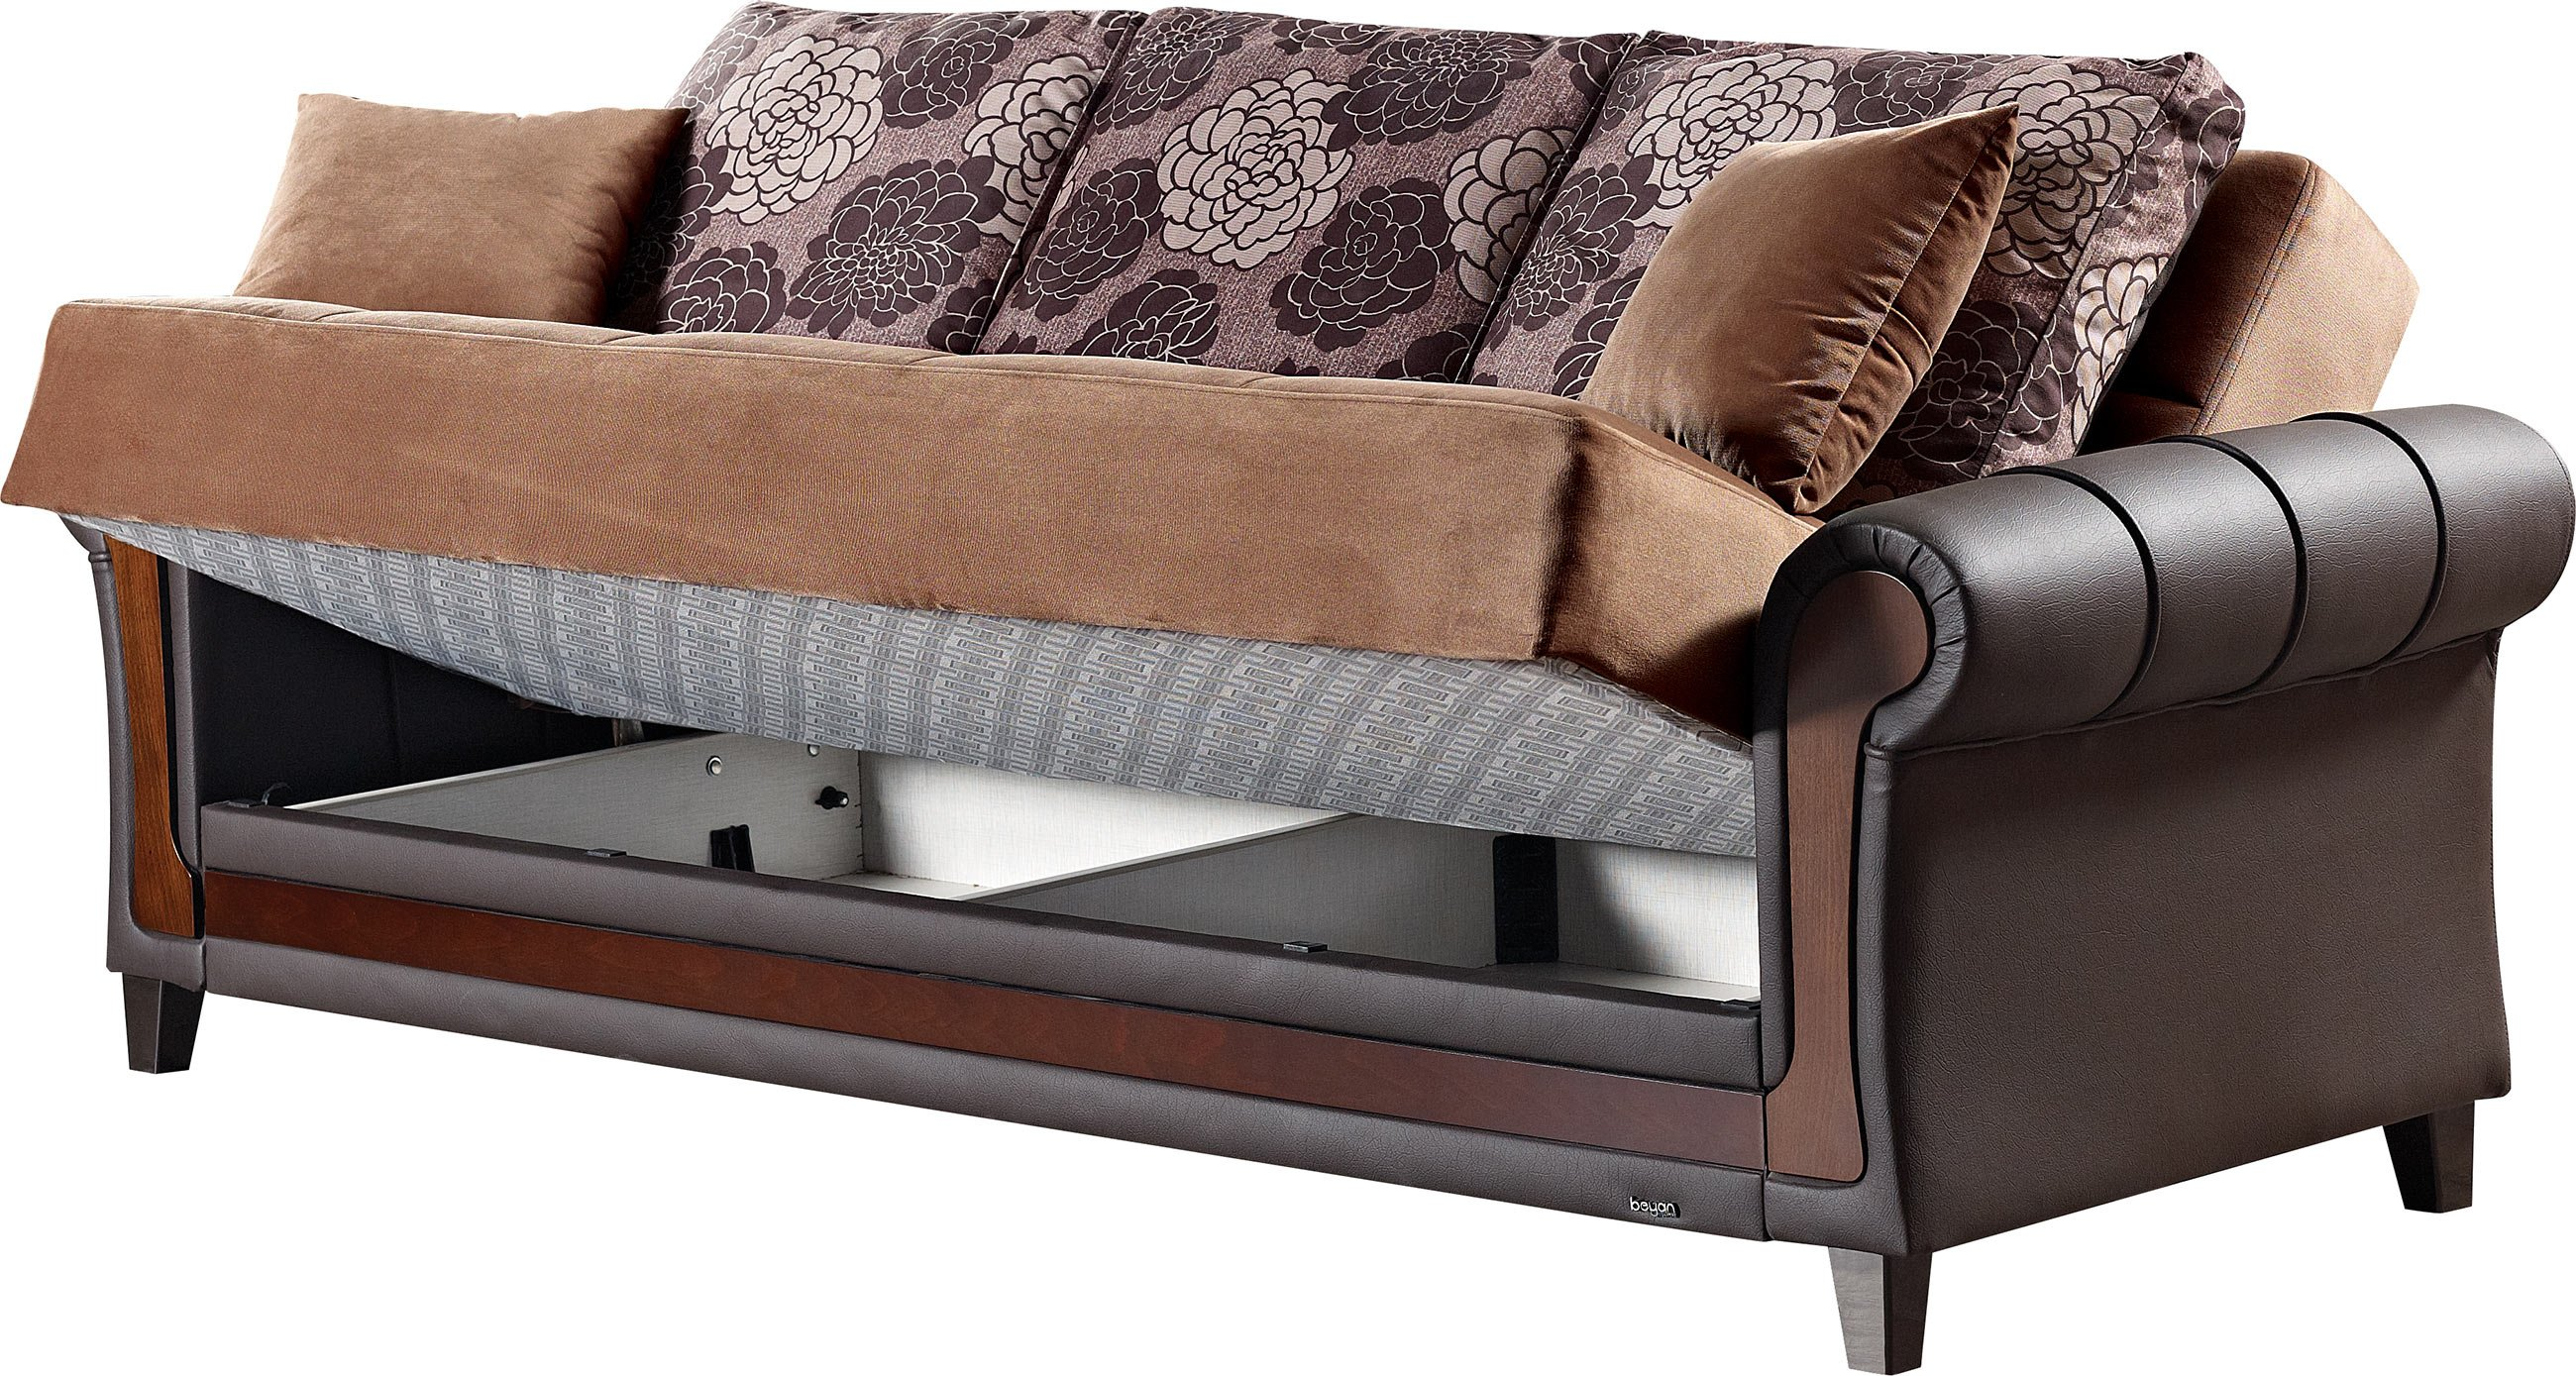 Idaho brown fabric sofa bed by empire furniture usa for Sofa bed name